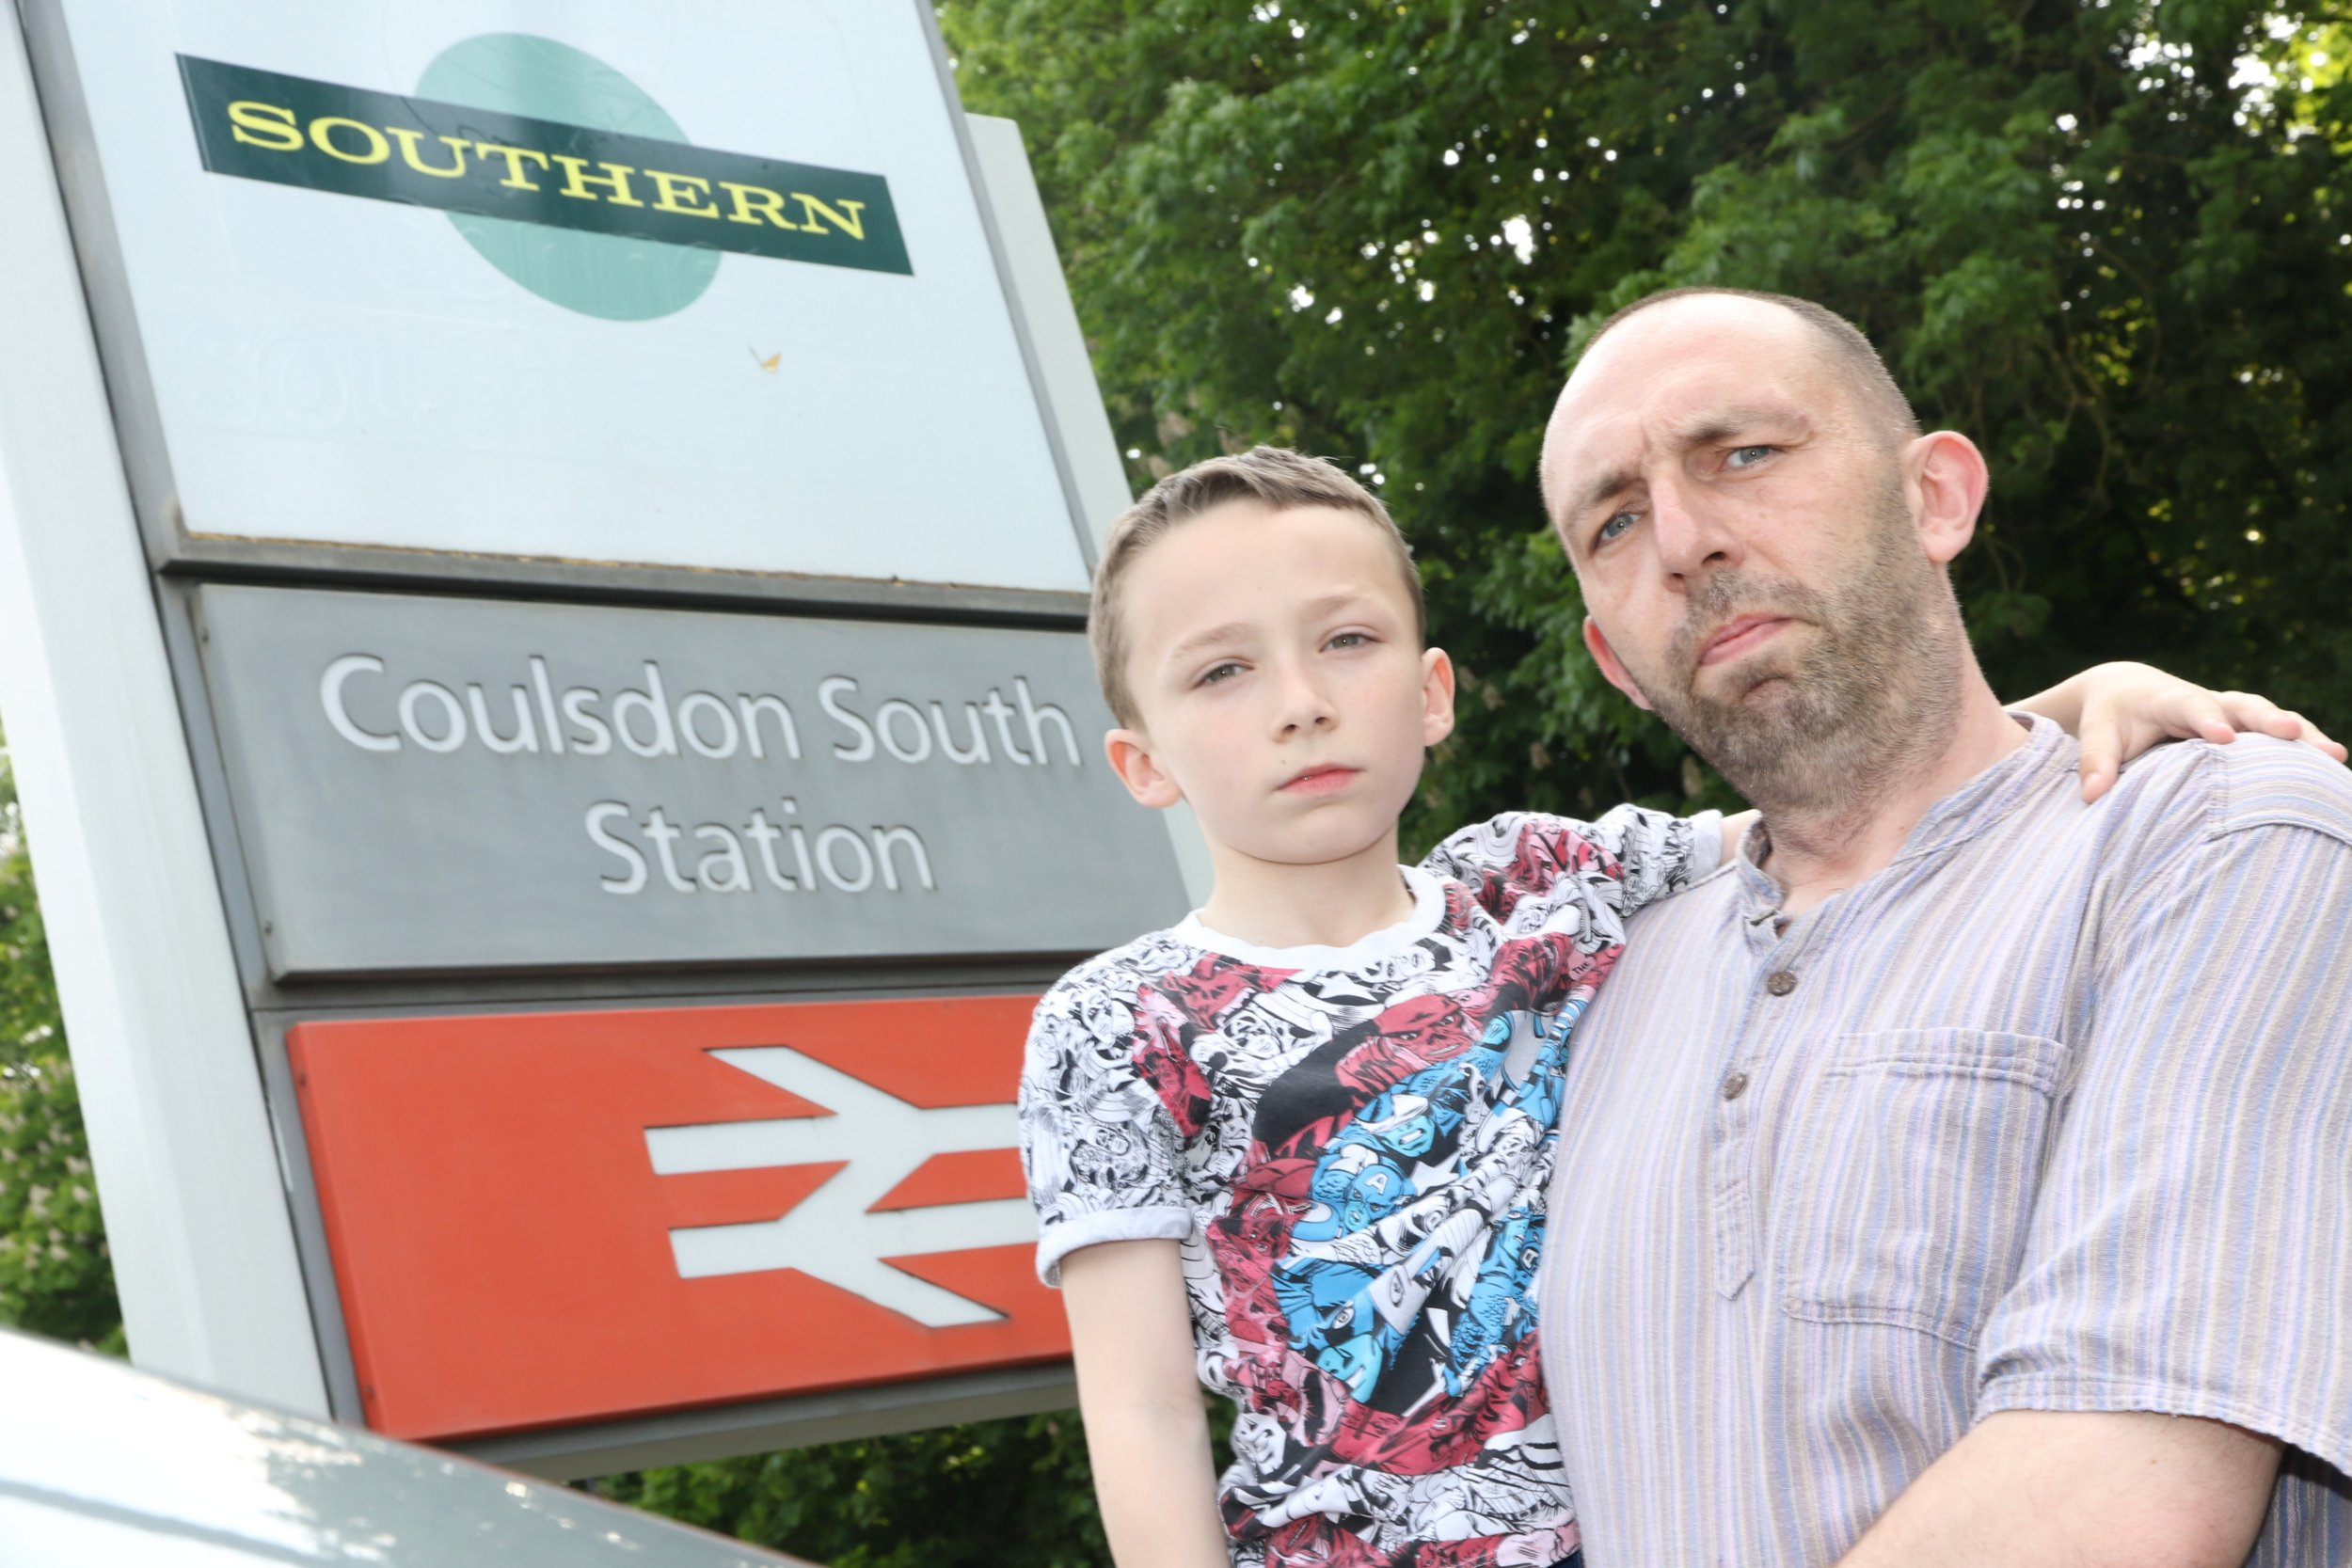 "Lee Fenton who lost his job after train company Southern Rail cancelled his train three days in a row. He is pictured here with his son Alex. See National News story NNRAIL; A Coulsdon man claims Southern has cost him his job after he was dismissed for being late three days in a row. Lee Fenton was 30 minutes late on the first three days of a temporary placement with Merton Council after the 7.33am service from Coulsdon South was cancelled on Monday, Tuesday and Wednesday of last week (May 23, 24, and 25). The dismissal has left Mr Fenton with no income to support wife Charlotte and eight-year-old son Alex, or pay the mortgage of their Southlands Close home, he said. ""I lost my job because I was relying on the trains to get me to work and because they are continually cancelled or late I was late to work and they dismissed me,"" Mr Fenton said."